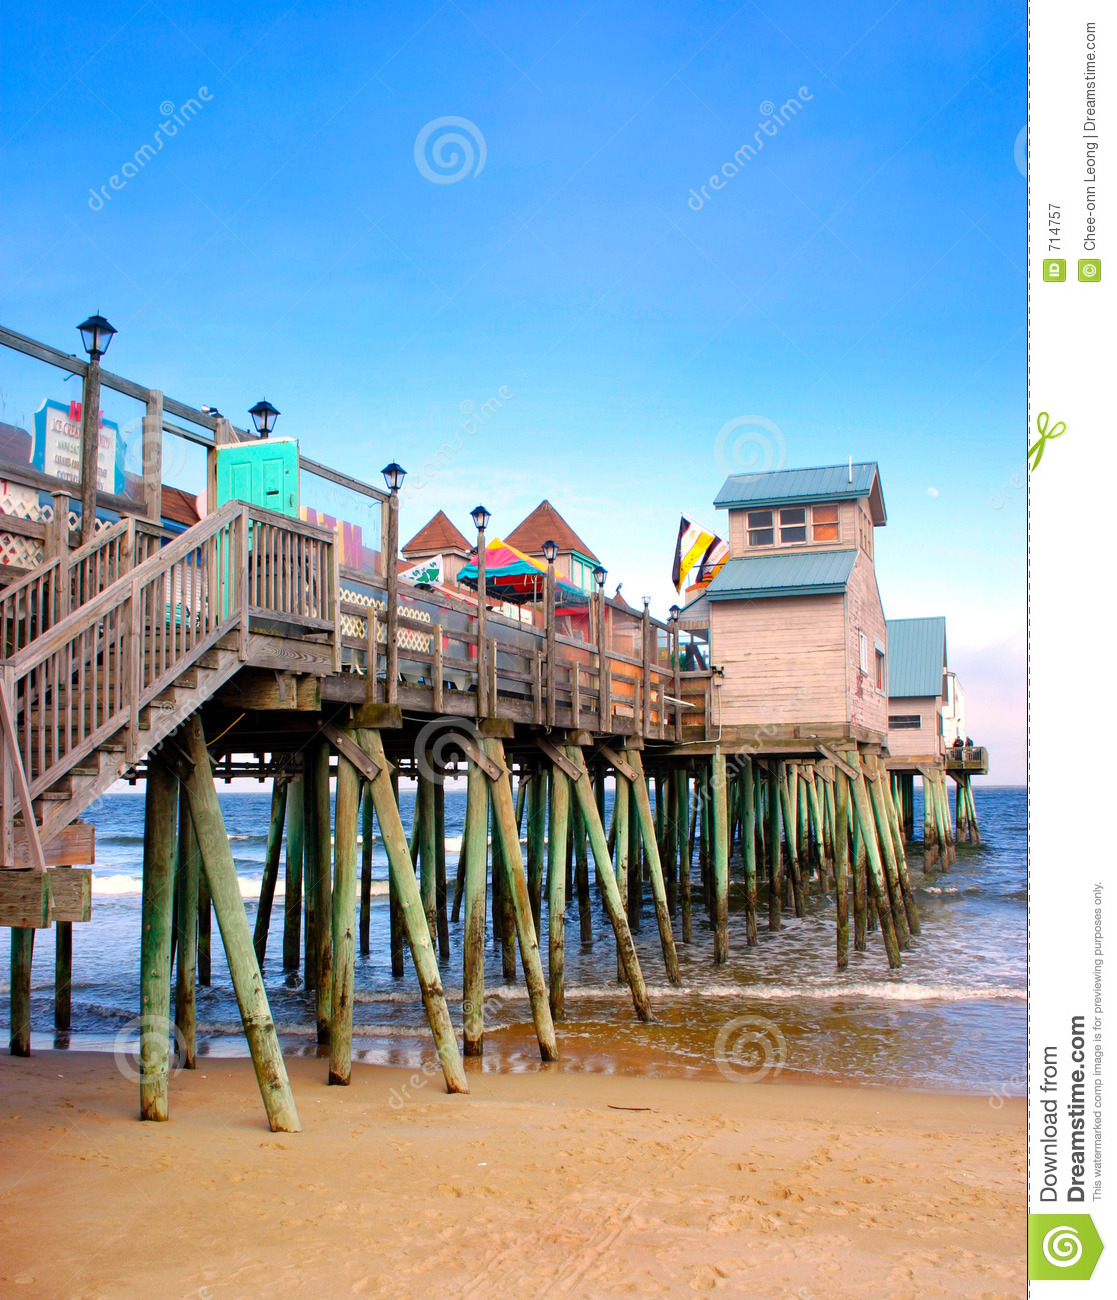 Fixing Up An Old New Englander In Maine: Old Orchard Beach, Maine Stock Image. Image Of Coastline